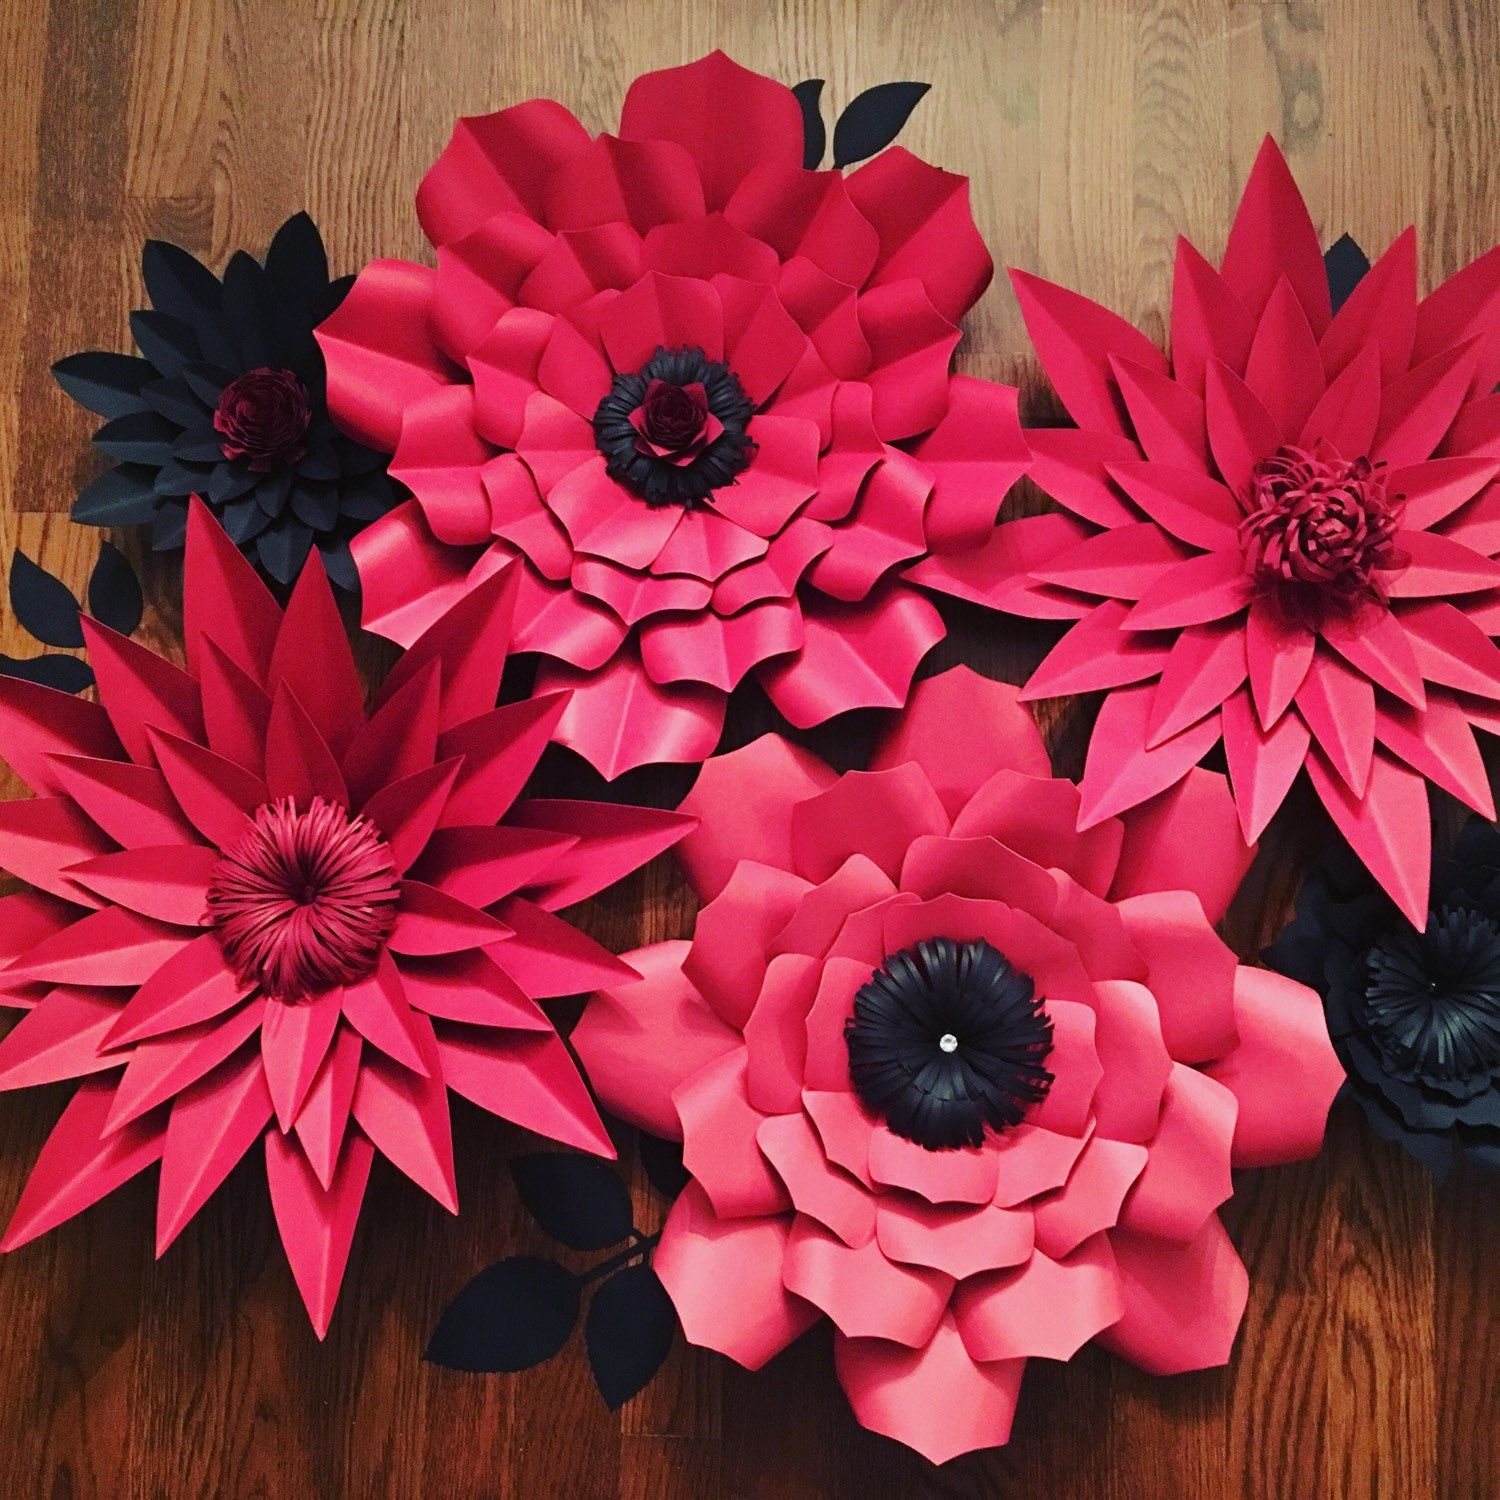 Giant large paper flowers for back drop customizable for wedding etsy red and black giant paper flowers mightylinksfo